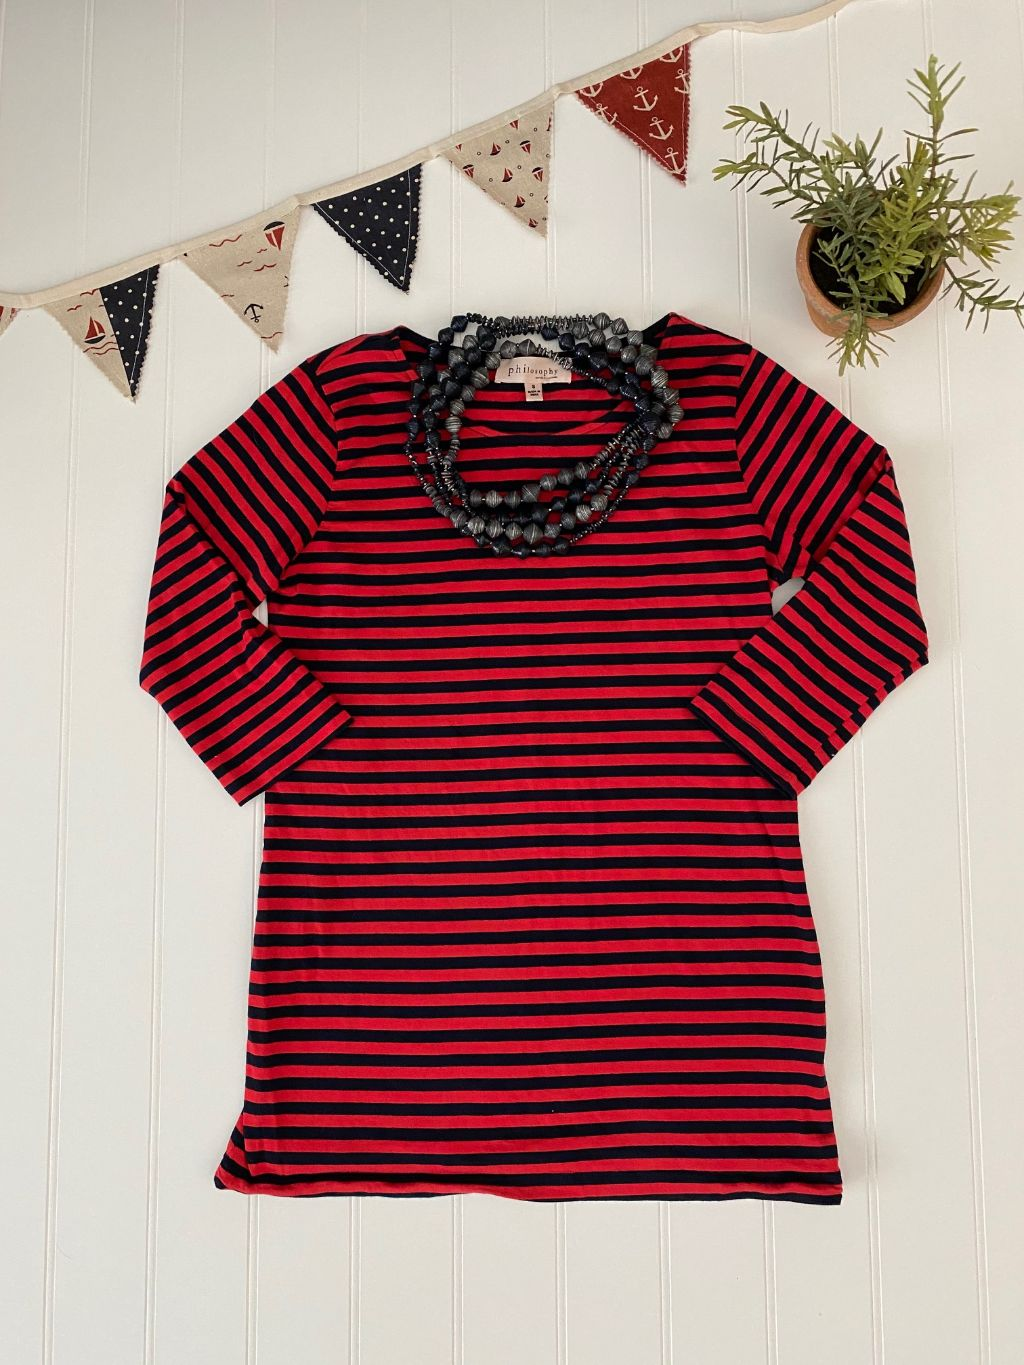 Pre-Loved Philosophy striped 3/4 sleeve top, S